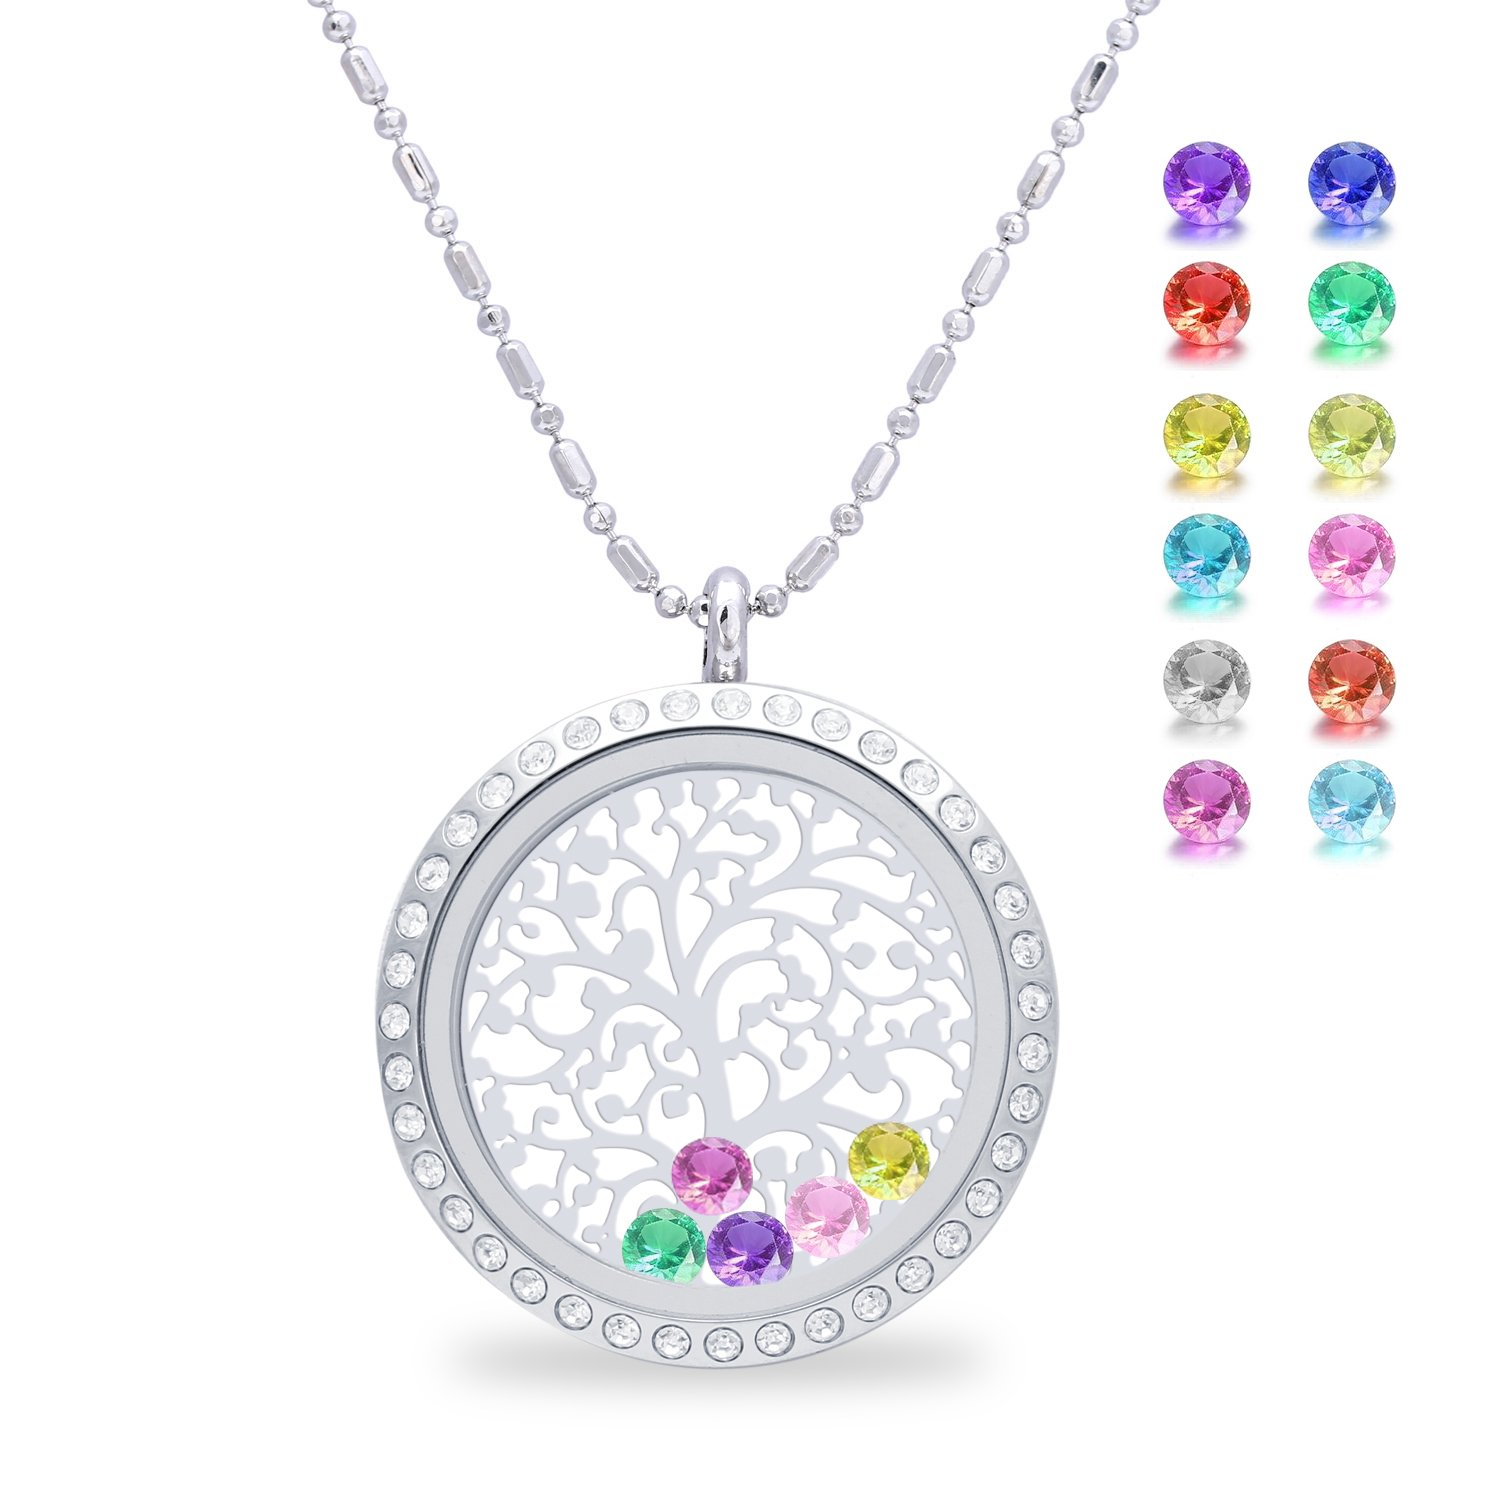 Family Tree of Life Floating Charms Living Memory Lockets, Mother Birthstone Magnetic Closure Stainless Steel Necklace, Jewelry Birthday Gifts for Mom, mother-in-law (Diamond)